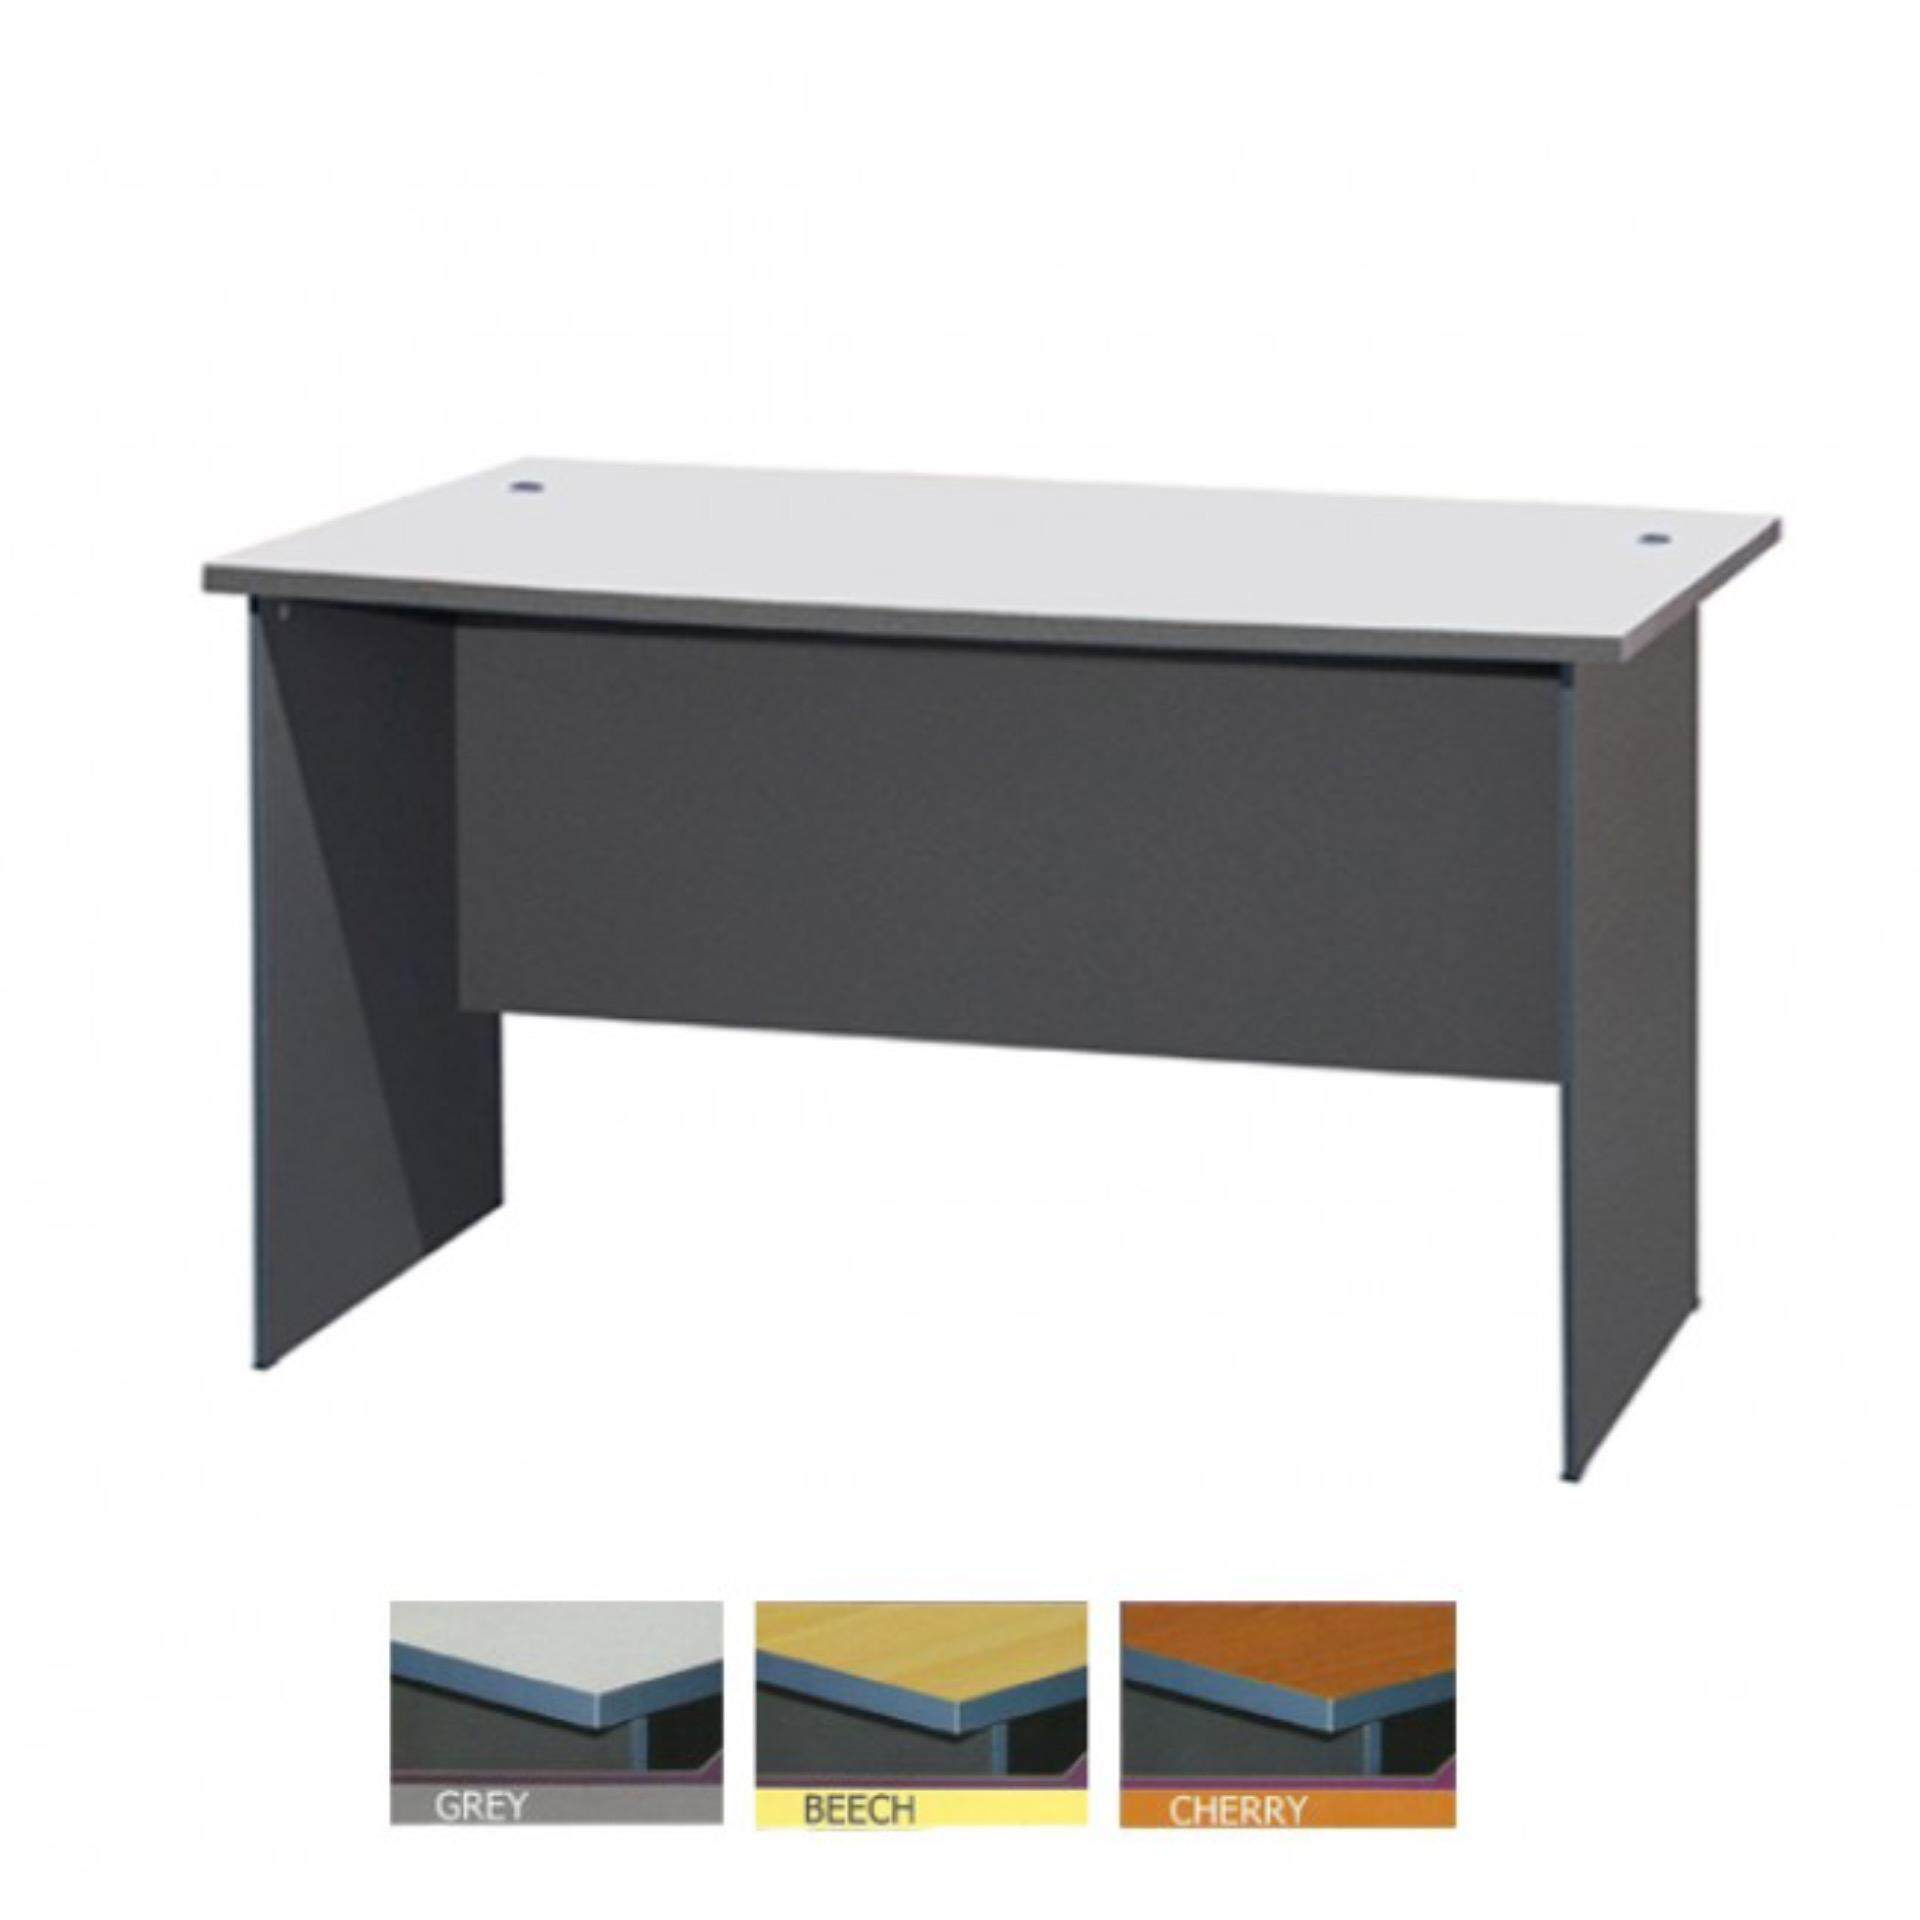 5-Feet Writing Desk Office Table Study Table New Design Table Office Table Office Desk Student Desk Study Table Foldable Table Study Desk L1500MM X D700MM X H745MM Grey